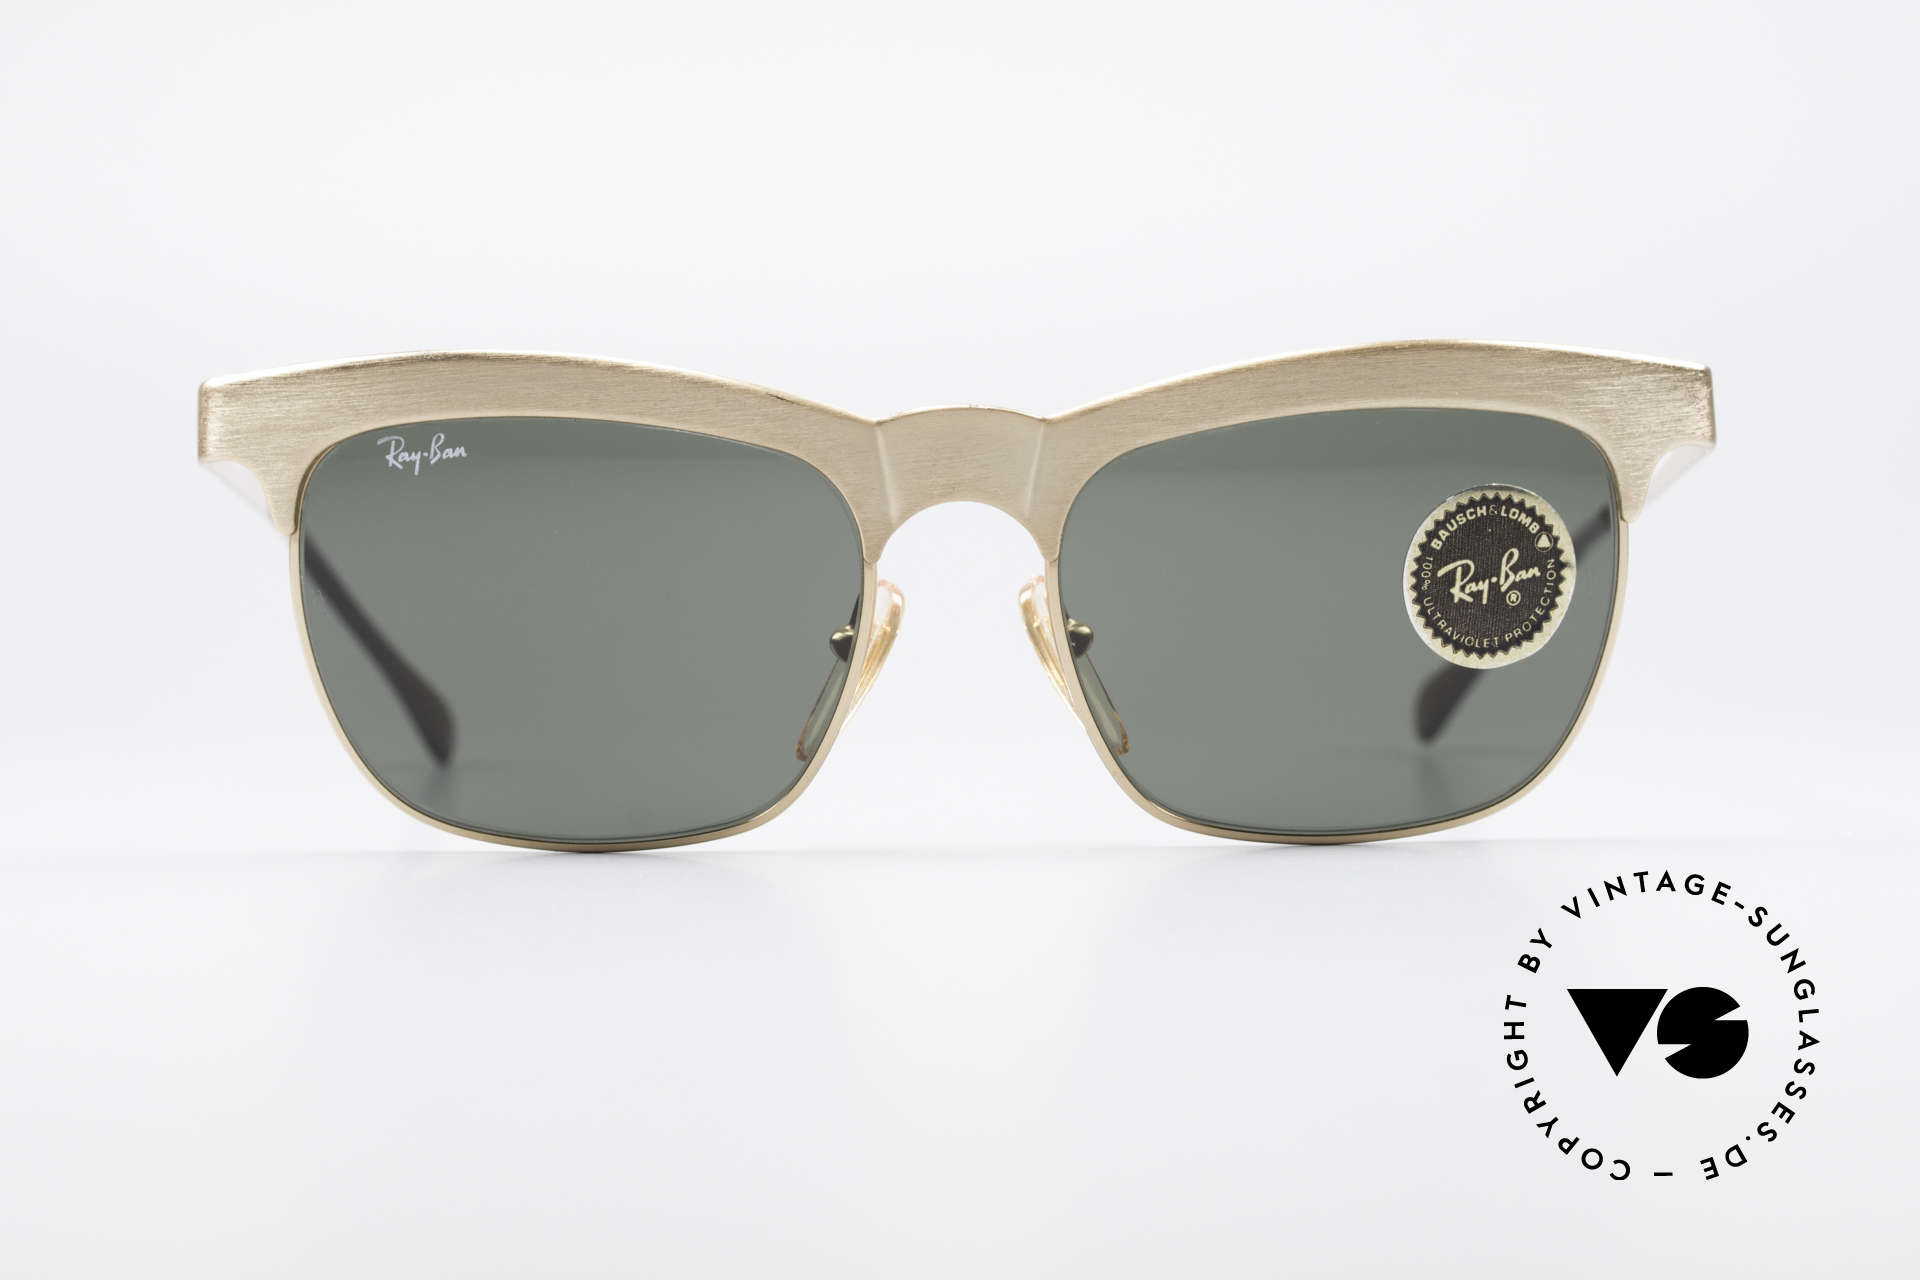 Ray Ban Nuevo 90's B&L Sunglasses W0755, massive frame made of thick robust metal, 54g, Made for Men and Women